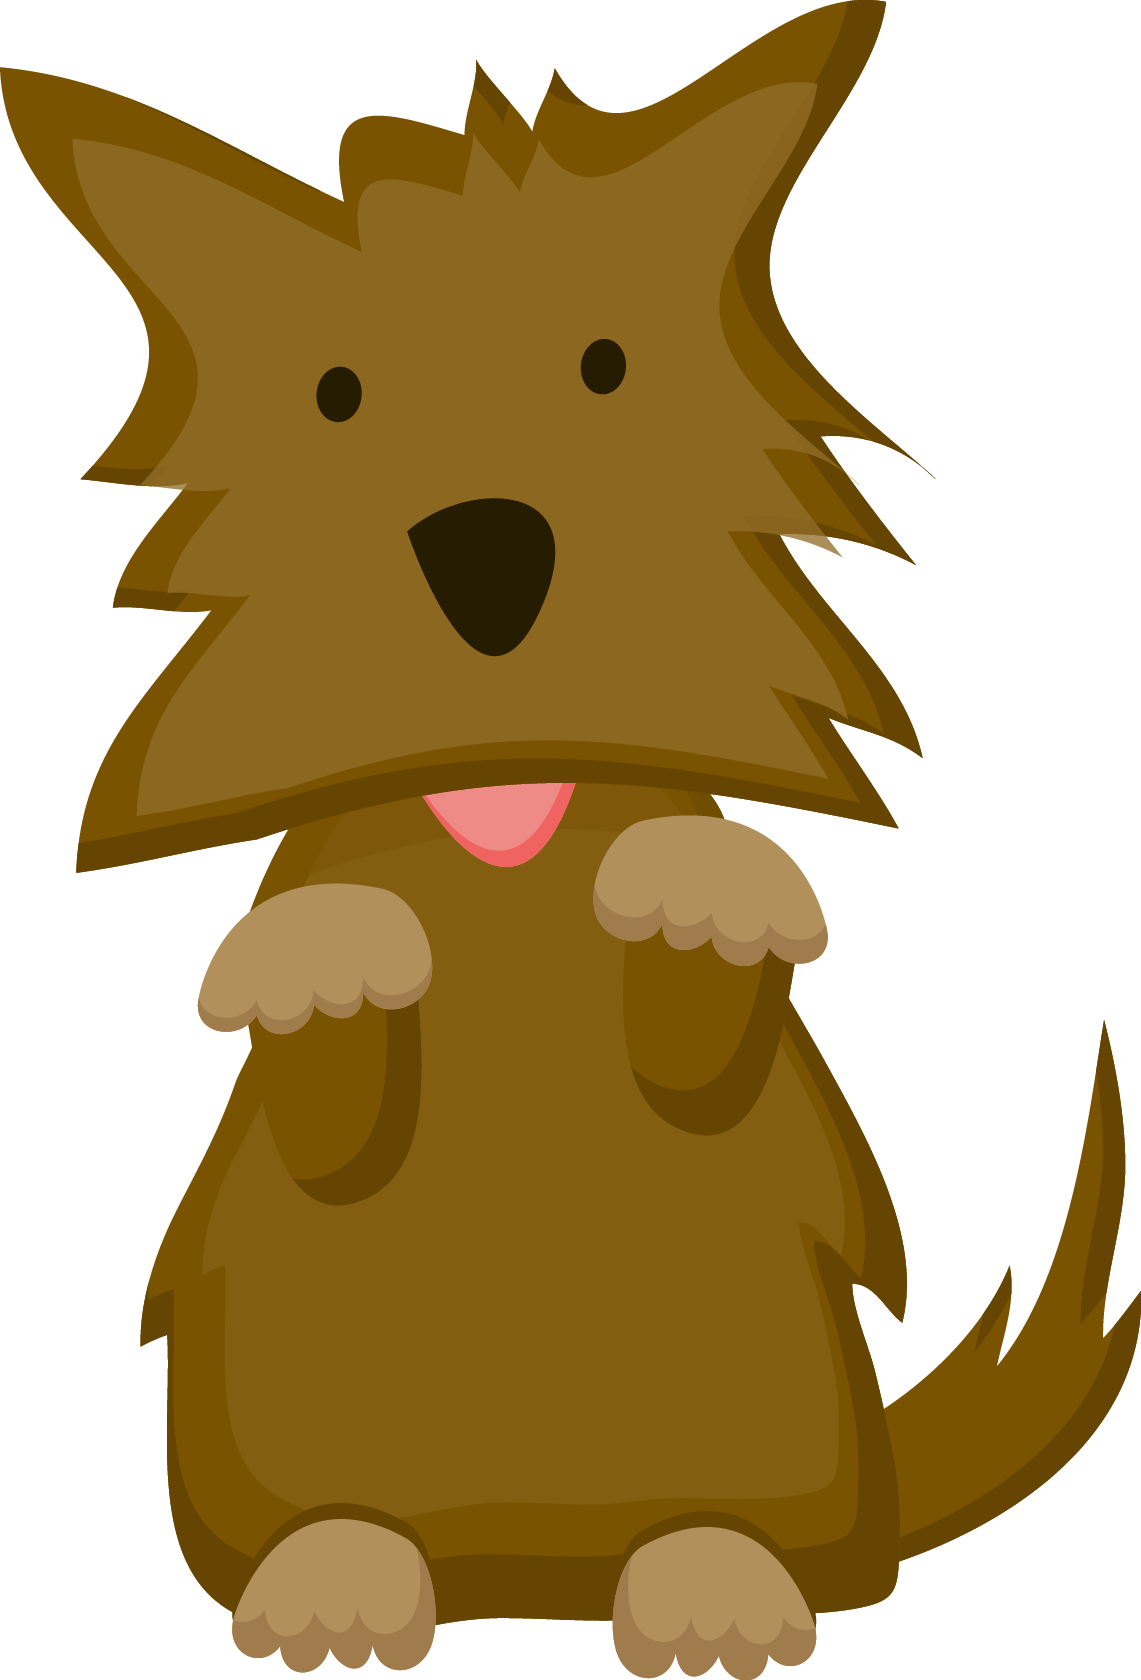 Toto dog clipart graphic royalty free stock iqDNJ0FIlzk5U.png (1141×1680) | Oz | Pinterest | Scrap graphic royalty free stock